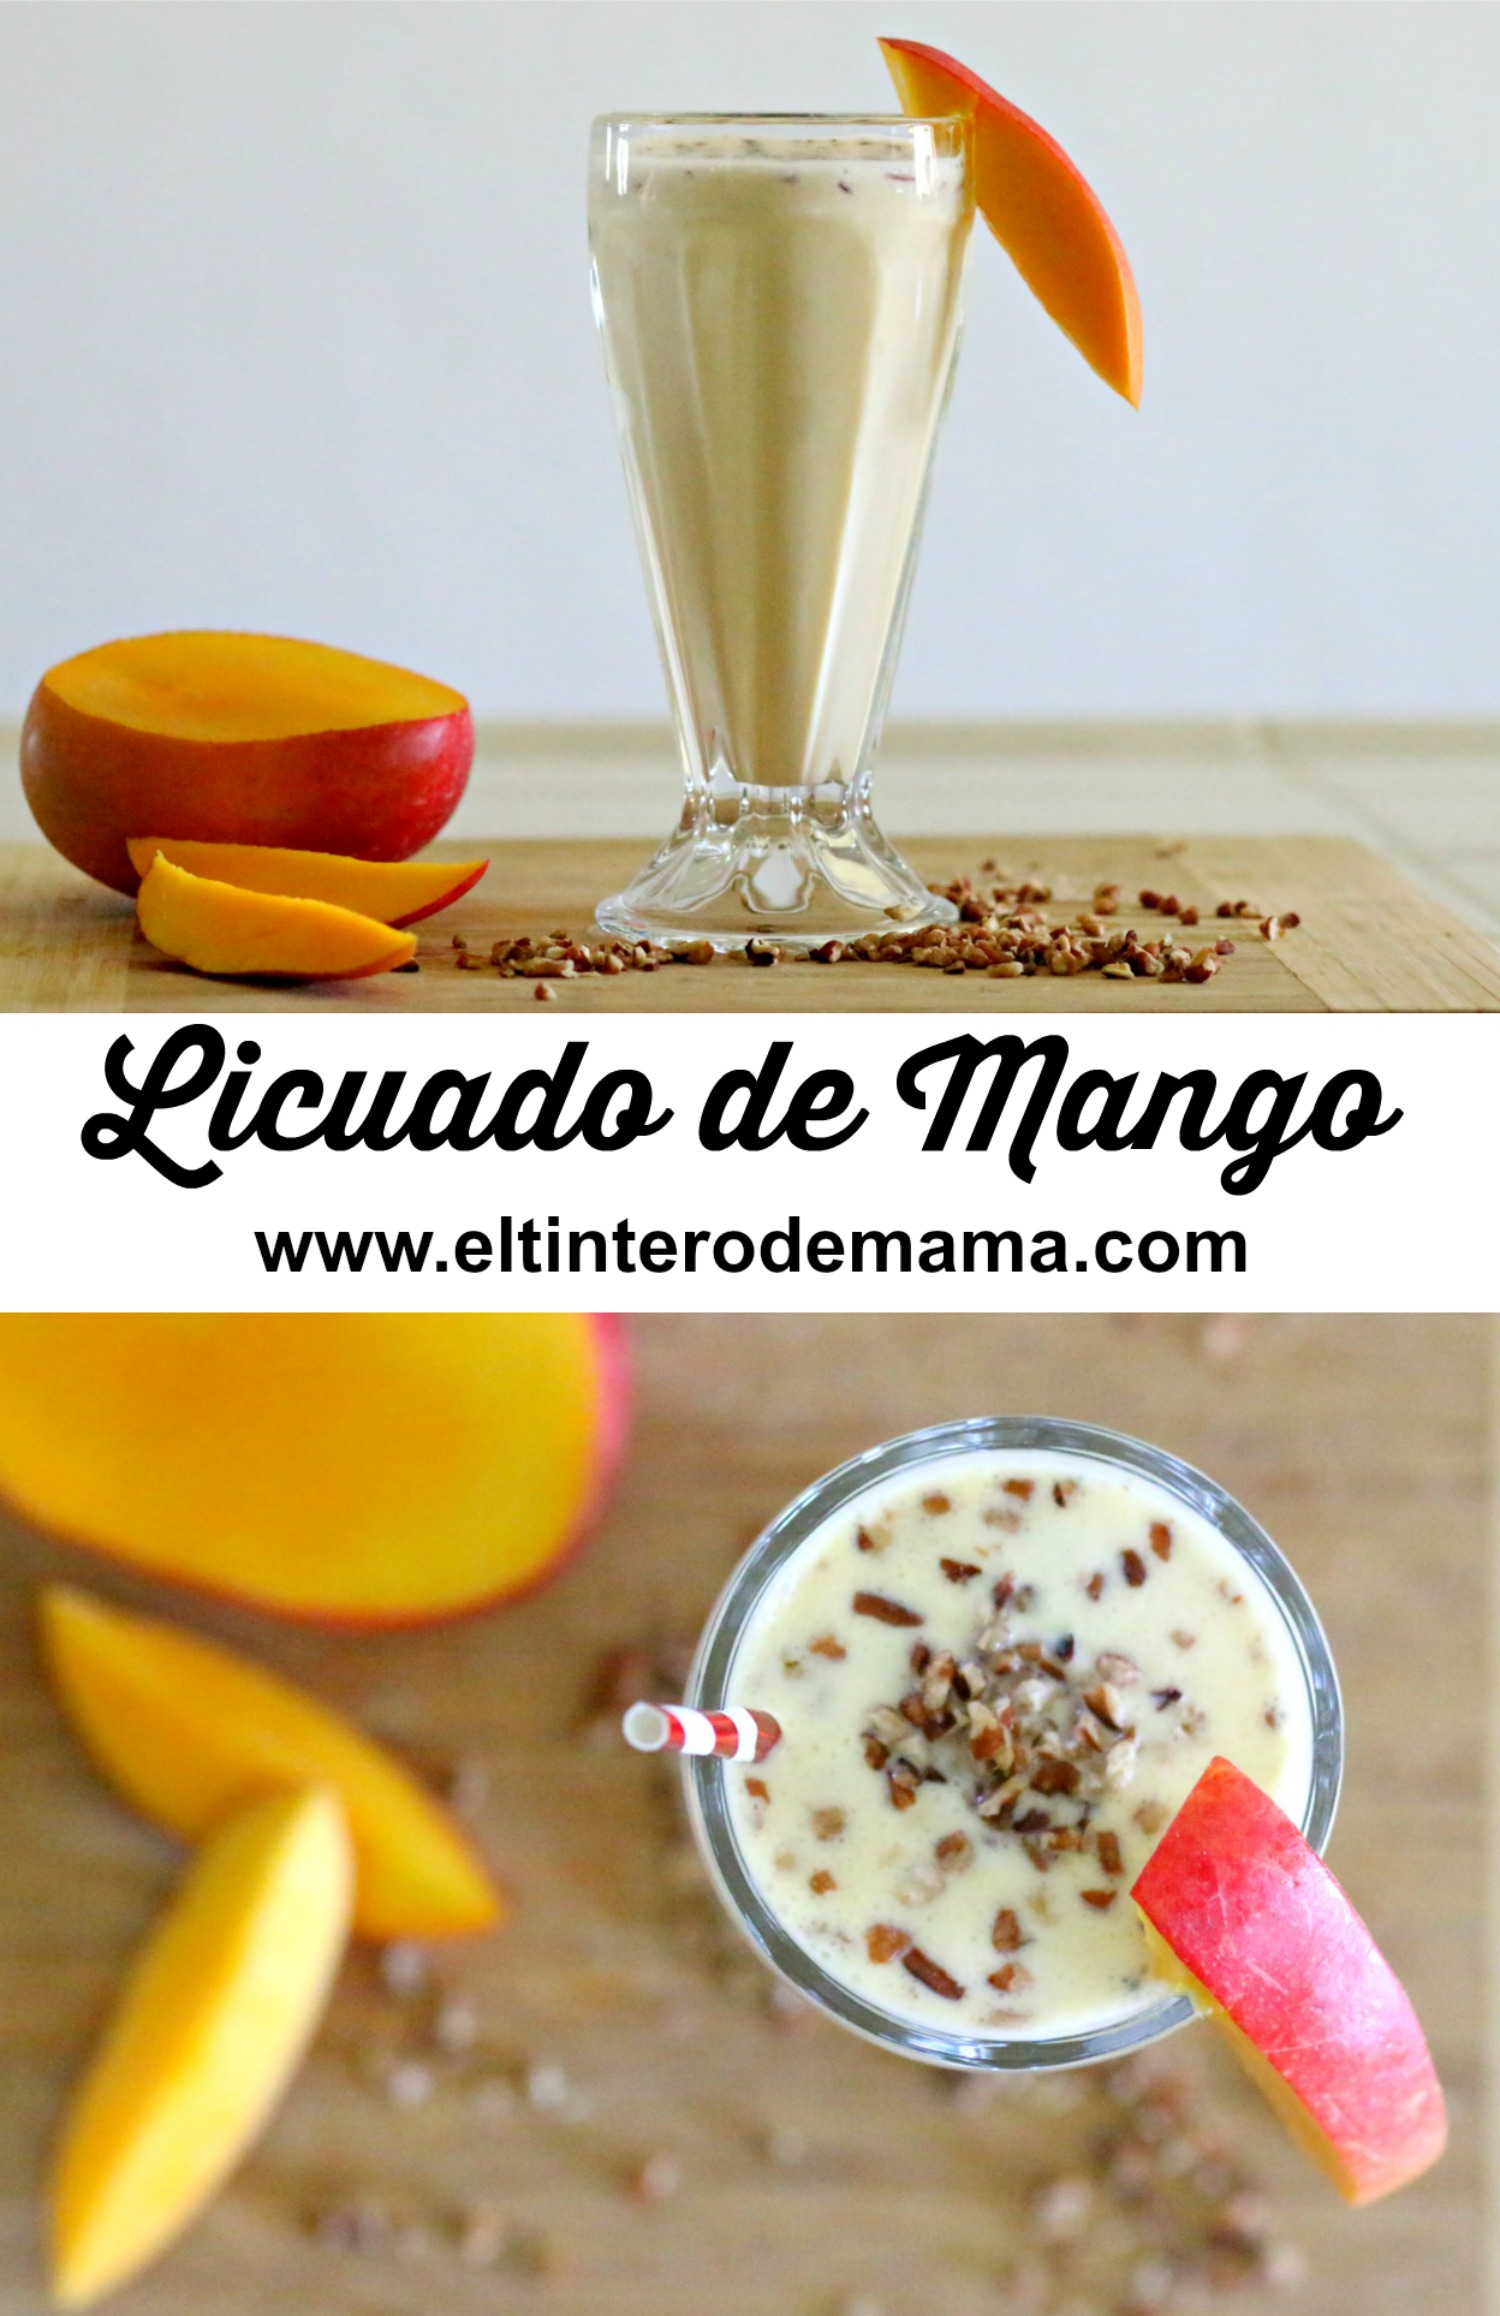 Mango-smoothie-recipe